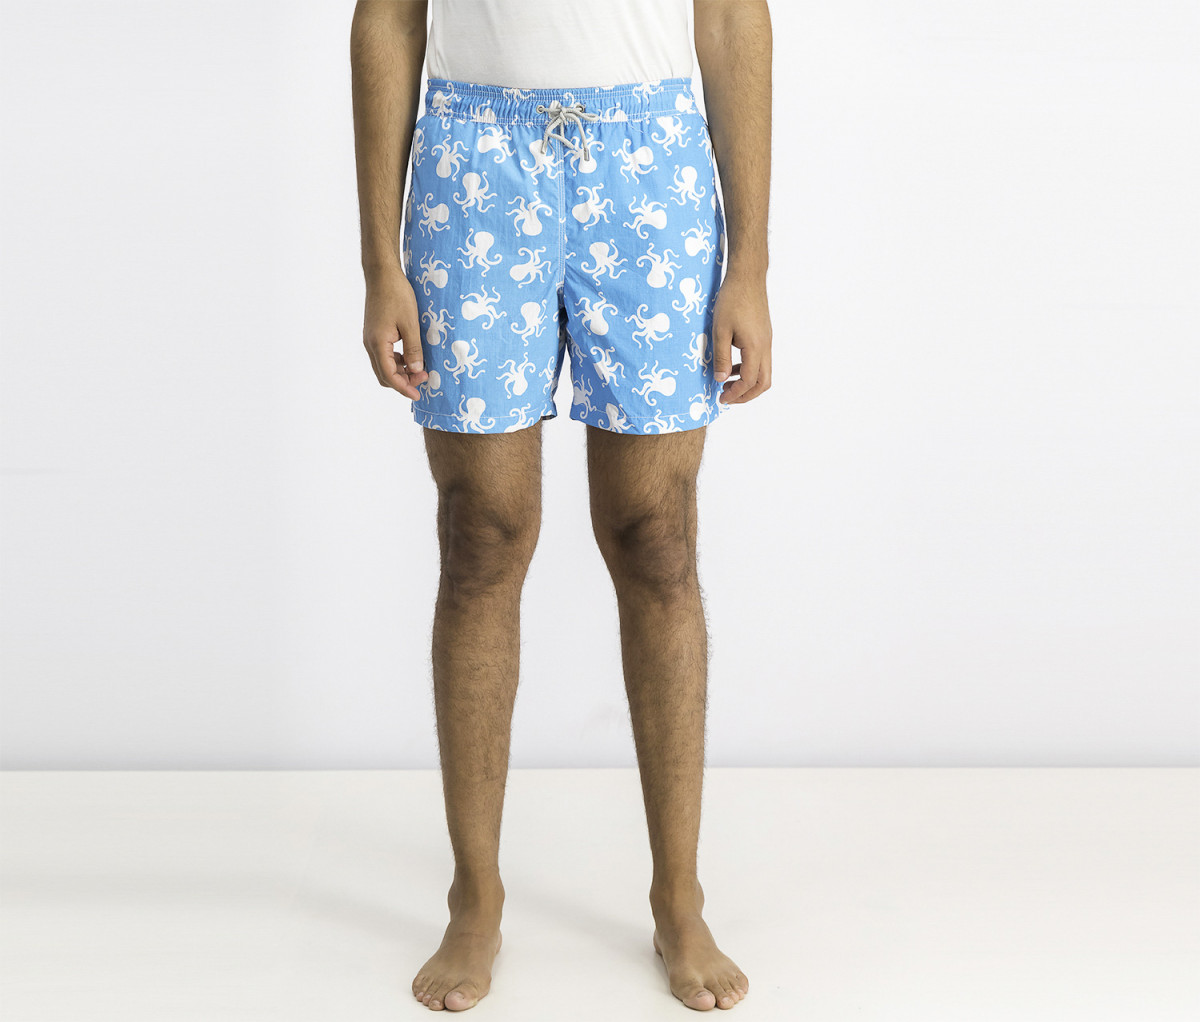 Hackett Mens Swim Trunks  Turquoise